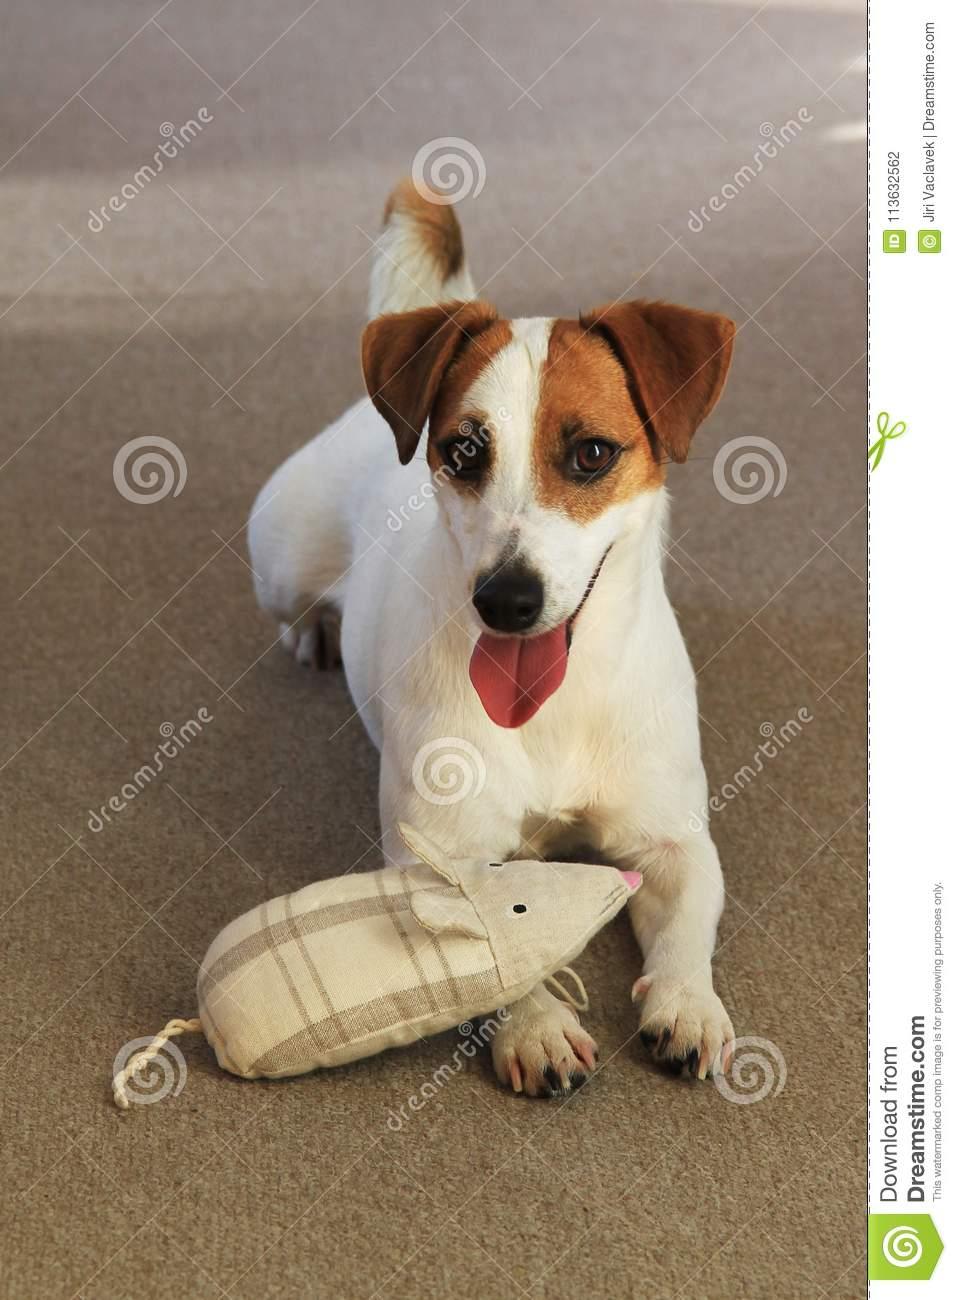 Jack russell terrier stock photo  Image of play, jack